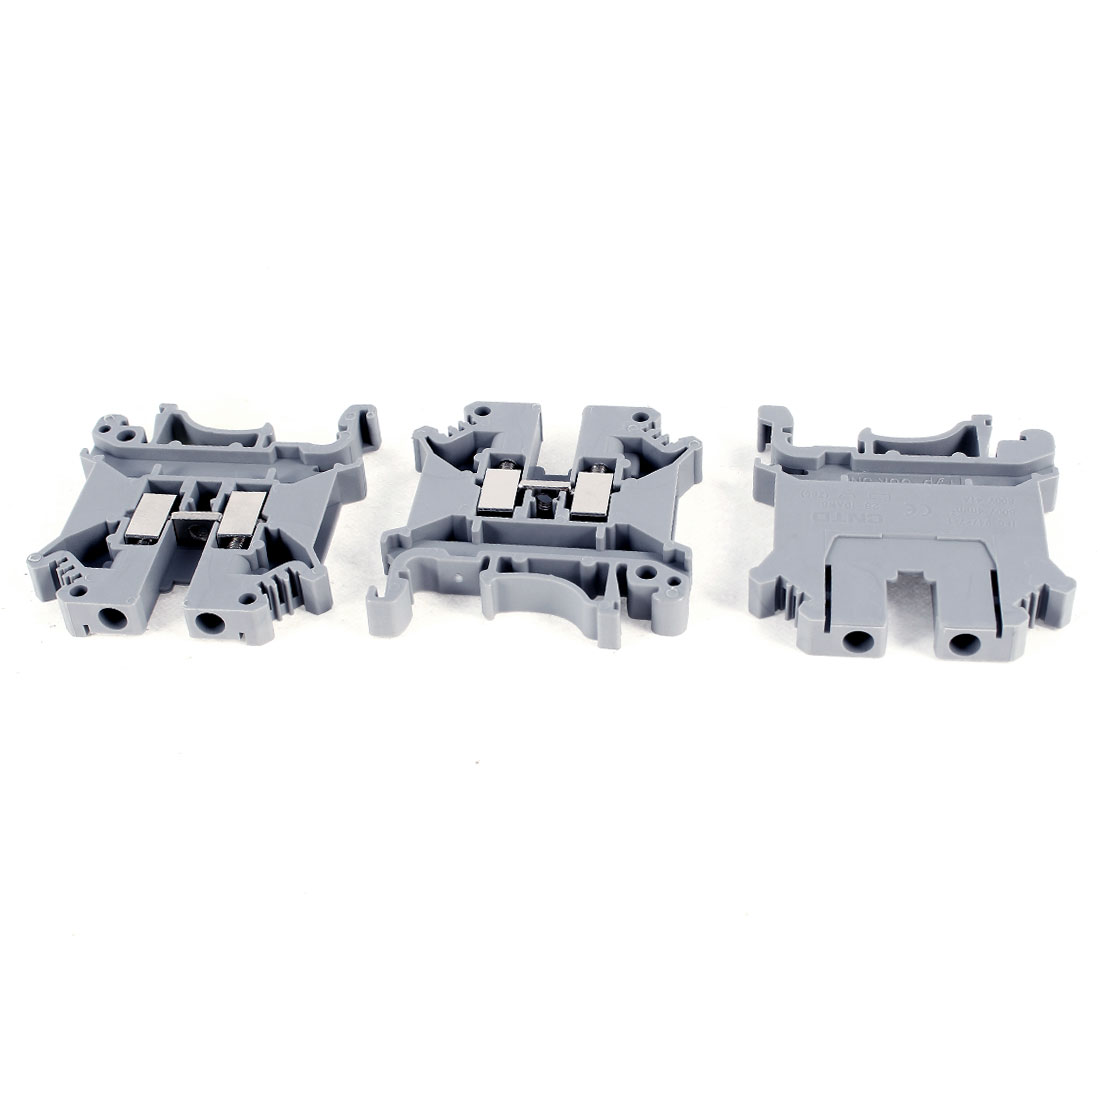 3 Pieces 800V 41A UK5-N 28-10AWG Screw Contact Terminal Block Connector Gray